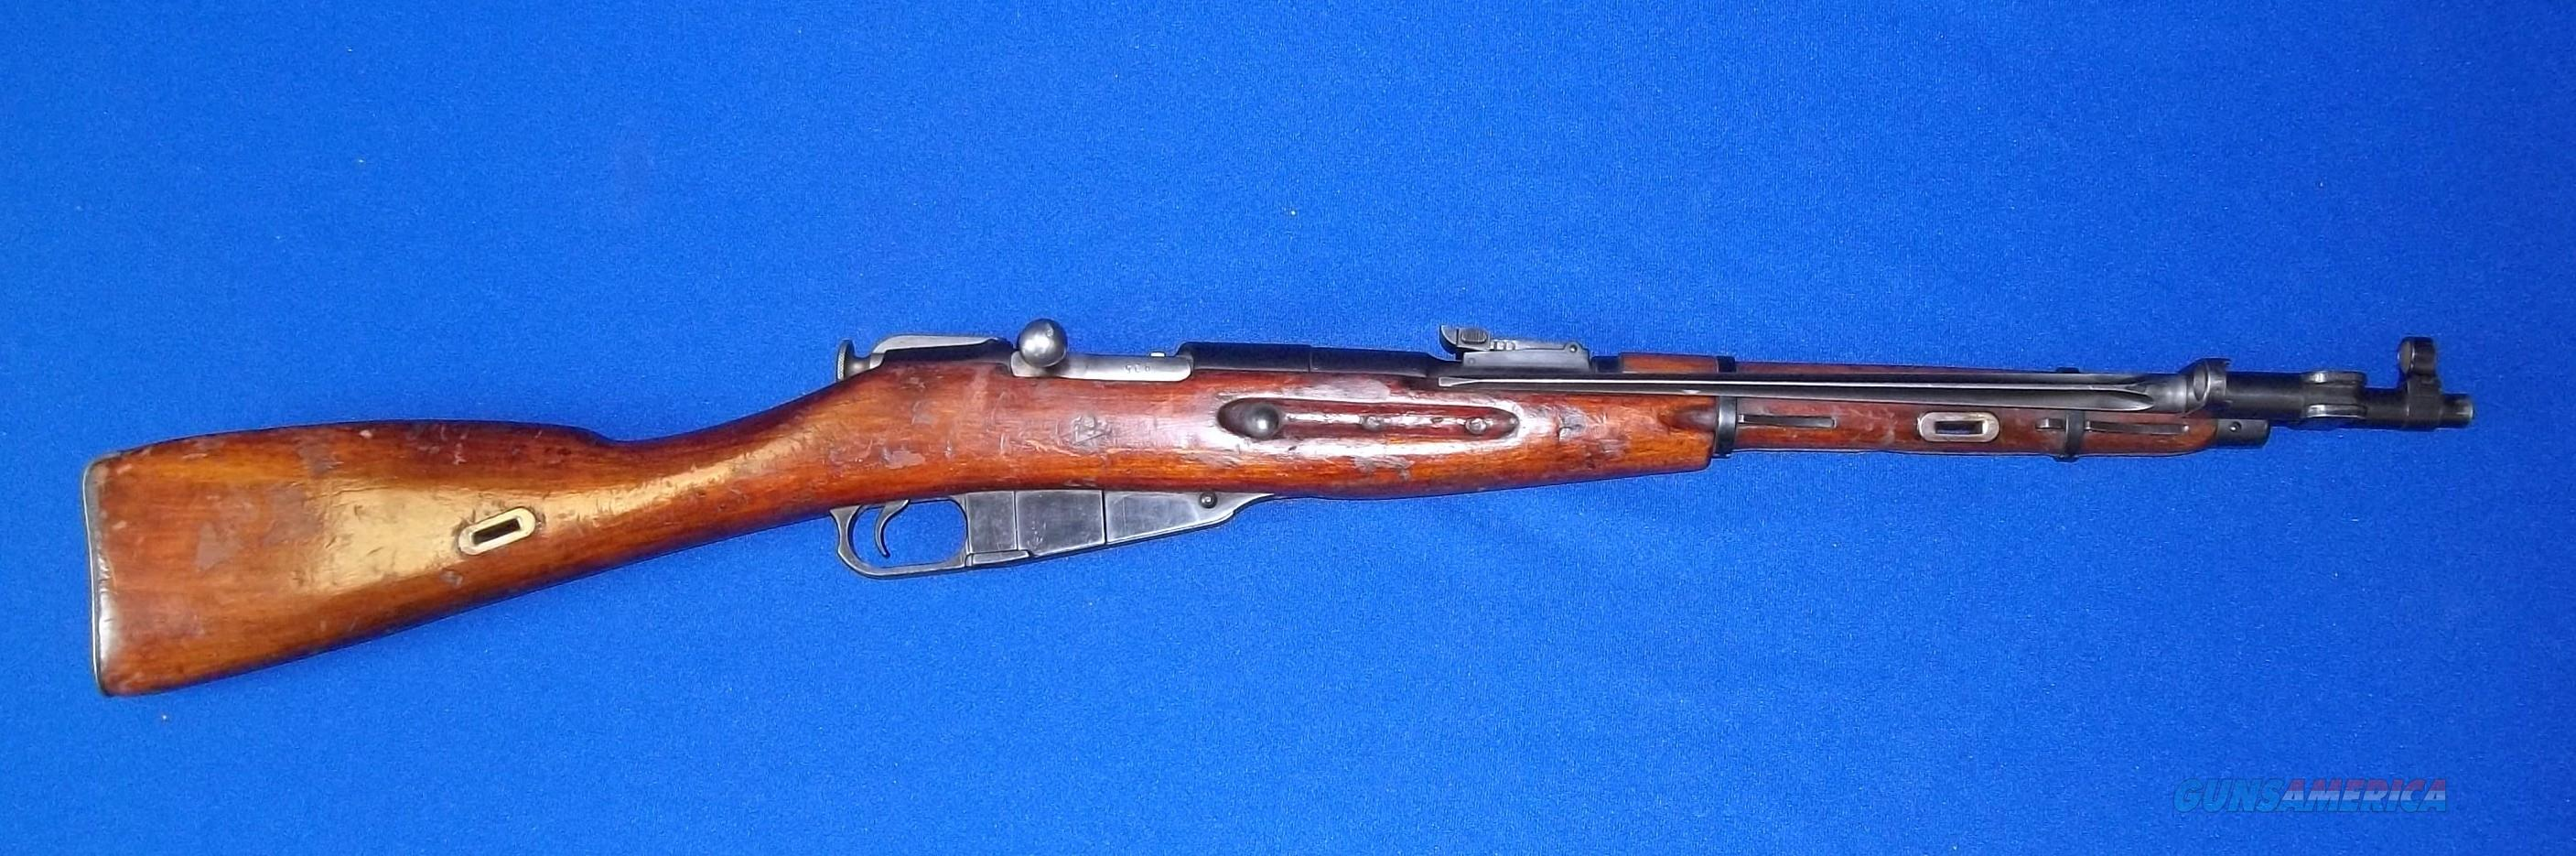 ROMANIAN M44 MOSIN NAGANT **ALL MATCHING** 1955 DATE  Guns > Rifles > Mosin-Nagant Rifles/Carbines